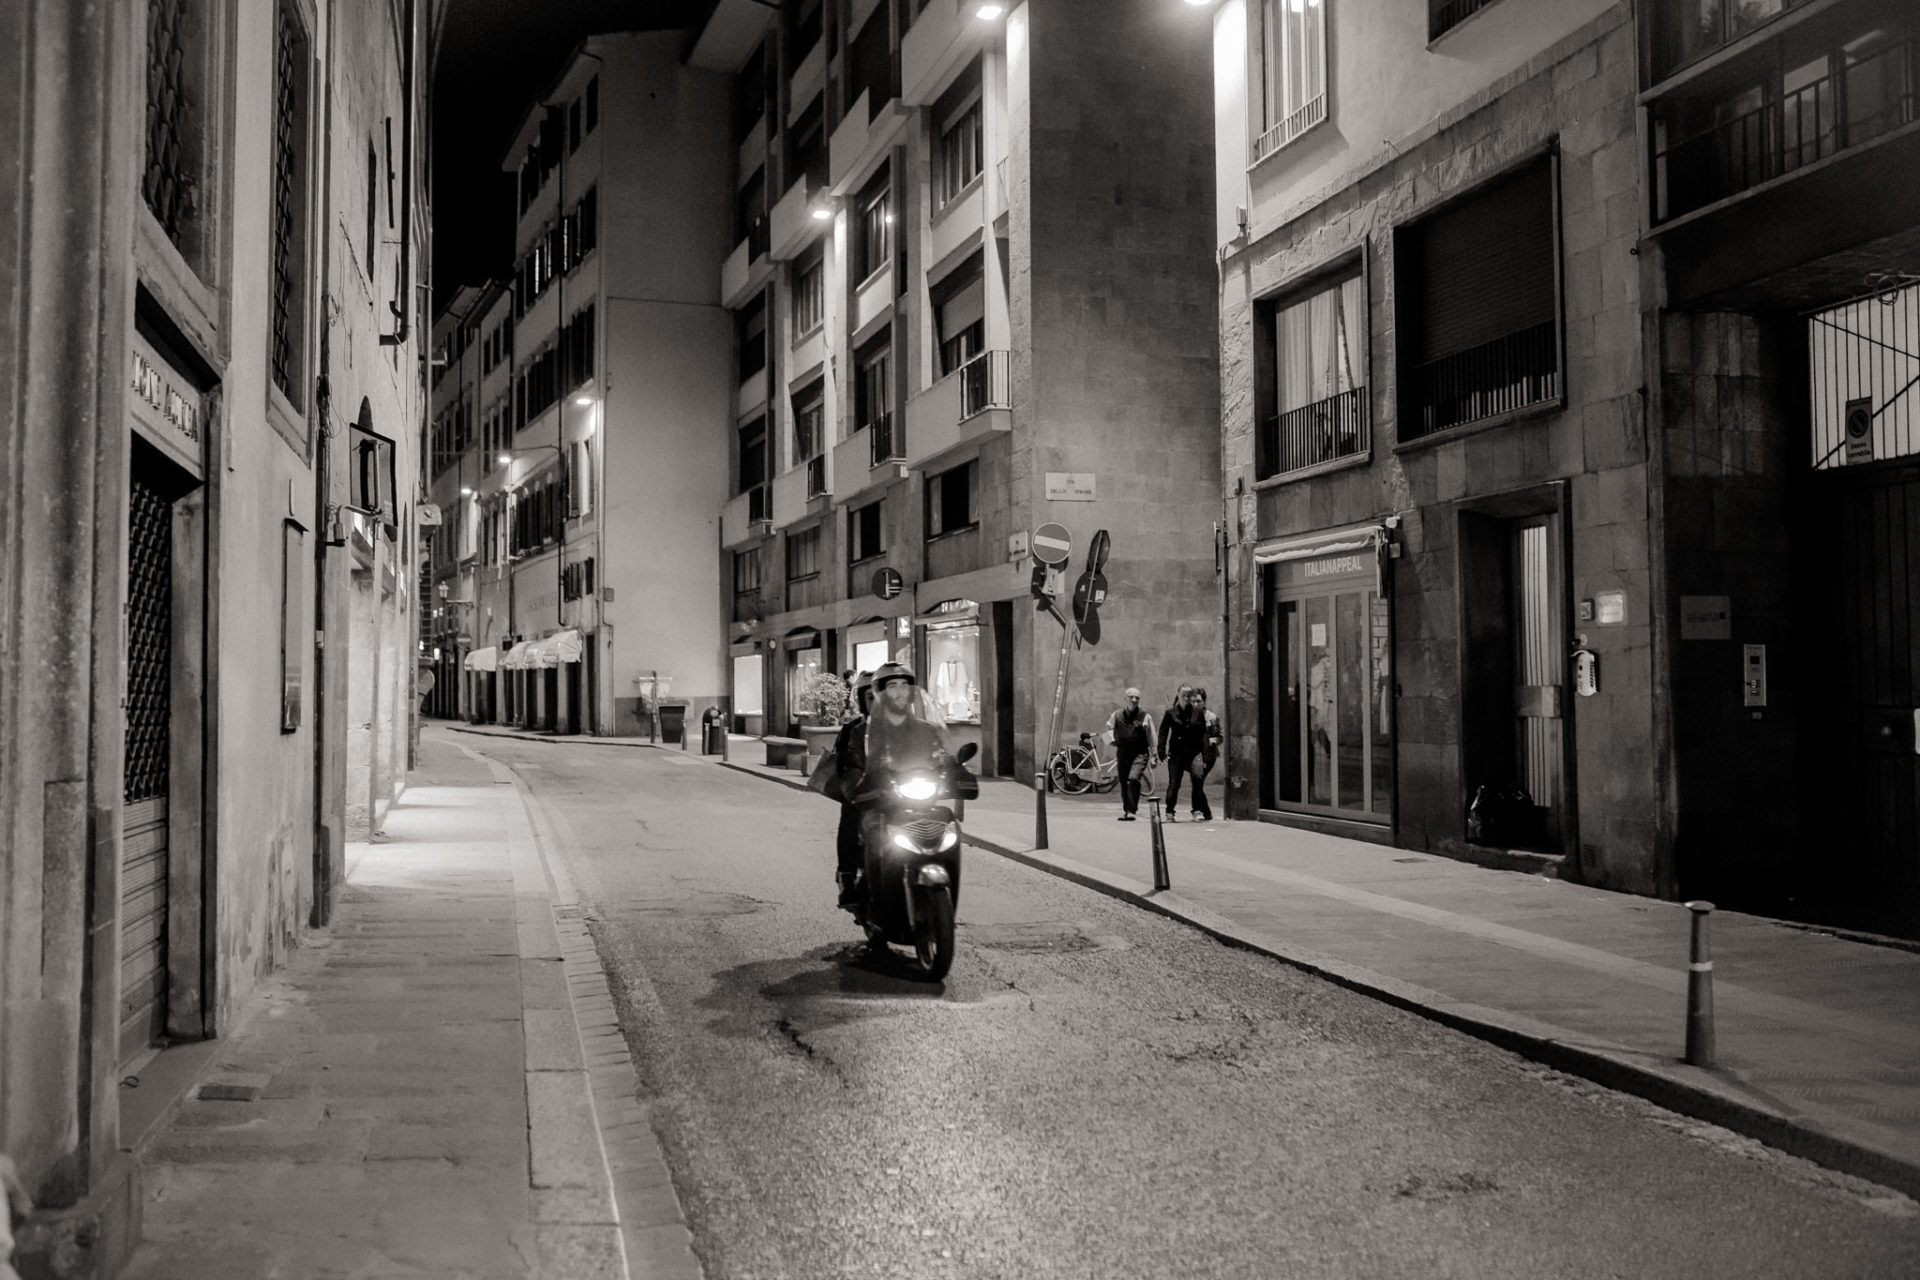 wedding photographer tuscany-italy road trip with dog-florence by night-explore italy